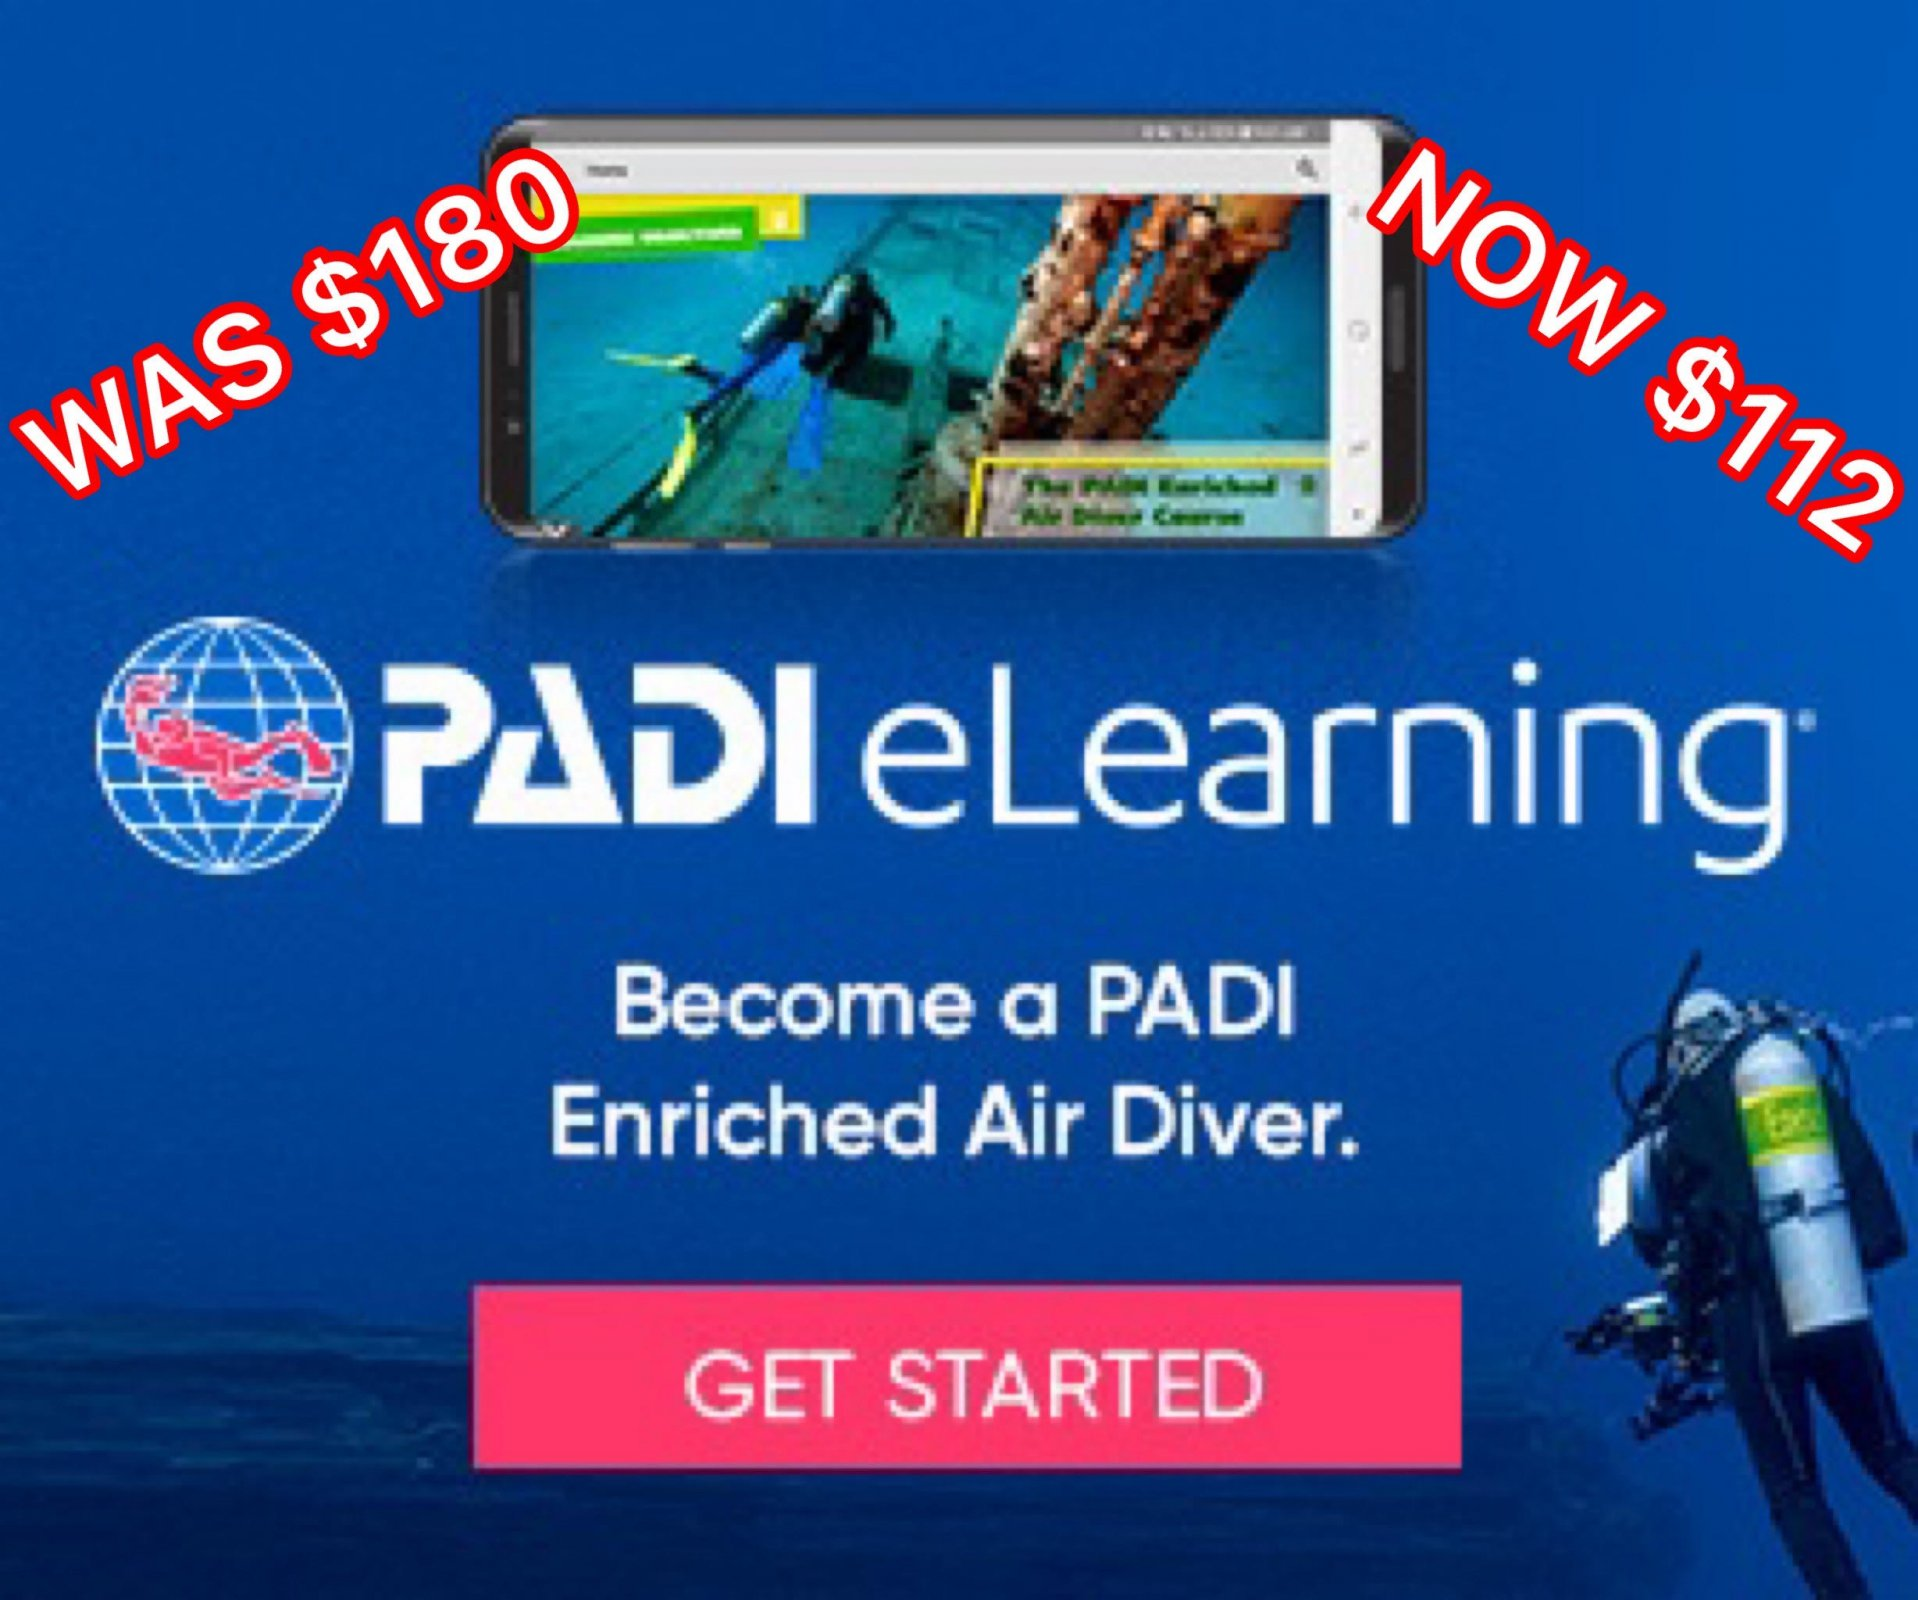 PADI E-LEARNING ENRICHED AIR DIVER